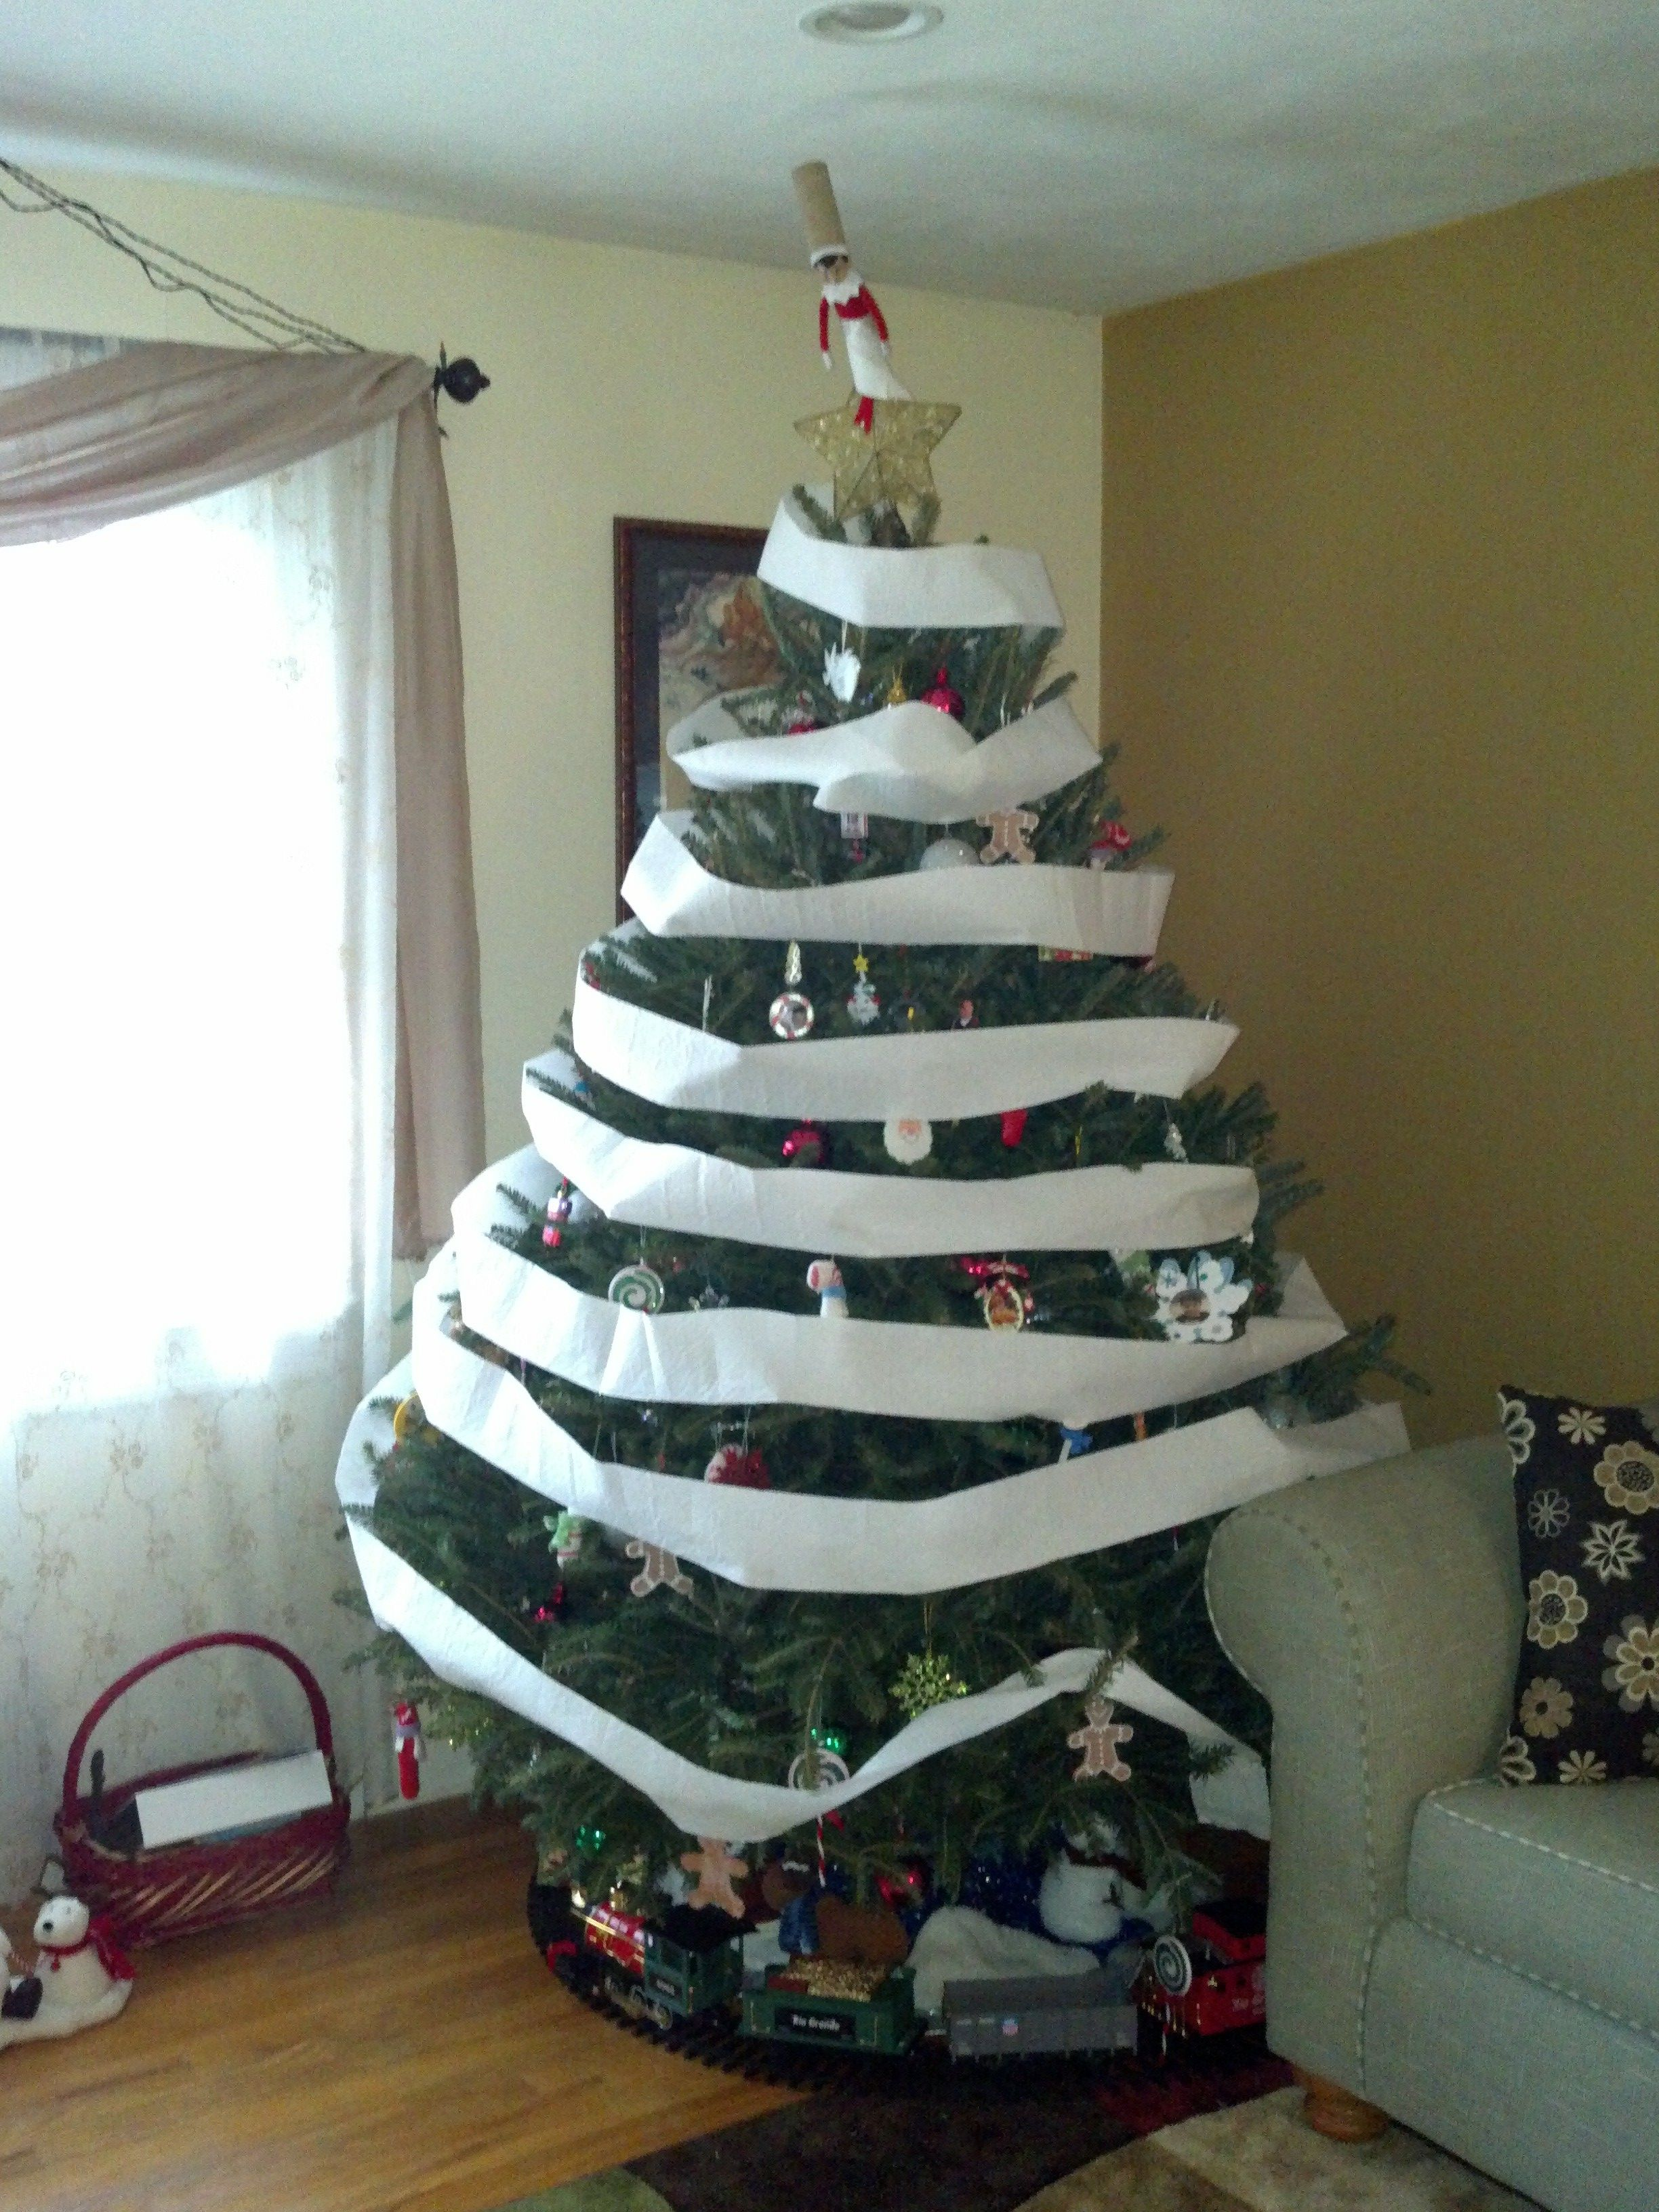 Elf on the Shelf - Decorate the Christmas tree...Elf style ...